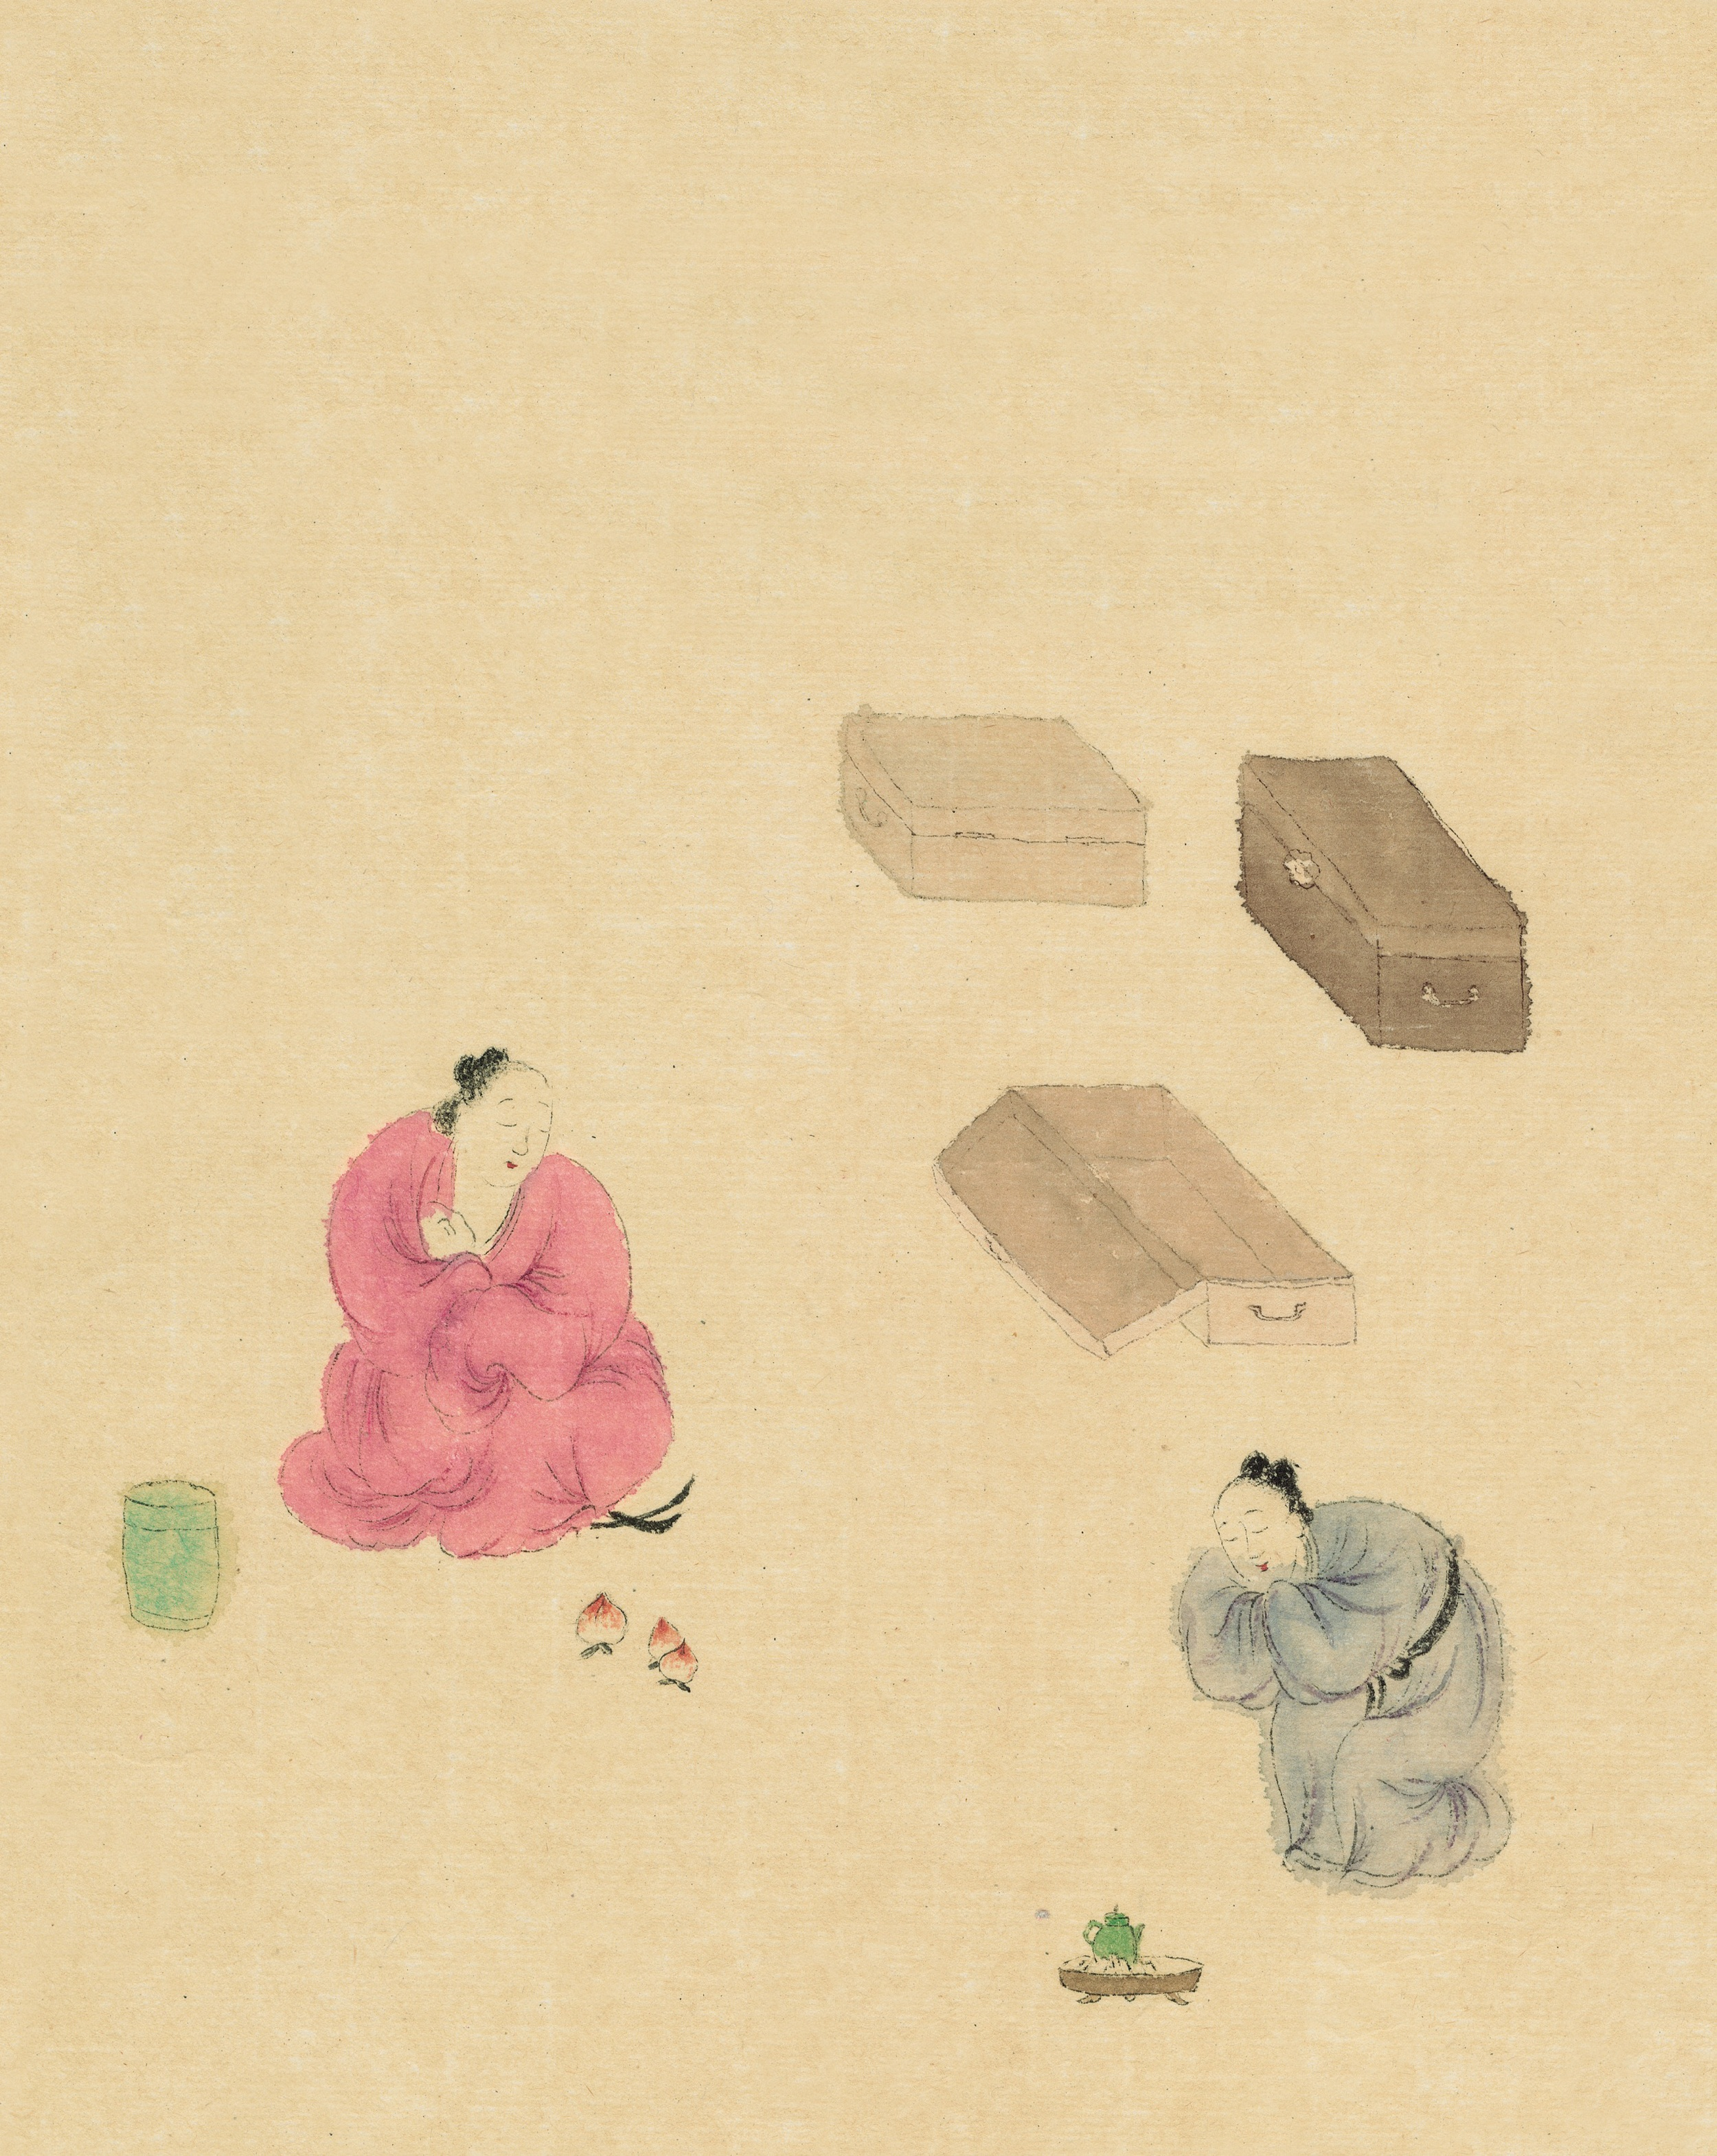 Wang Mengsha 王濛莎, The Isalnd of Peach Blossoms 桃花岛系列, 2009, Chinese ink and color on rice paper 纸本水墨设色, 60 x 65 cm